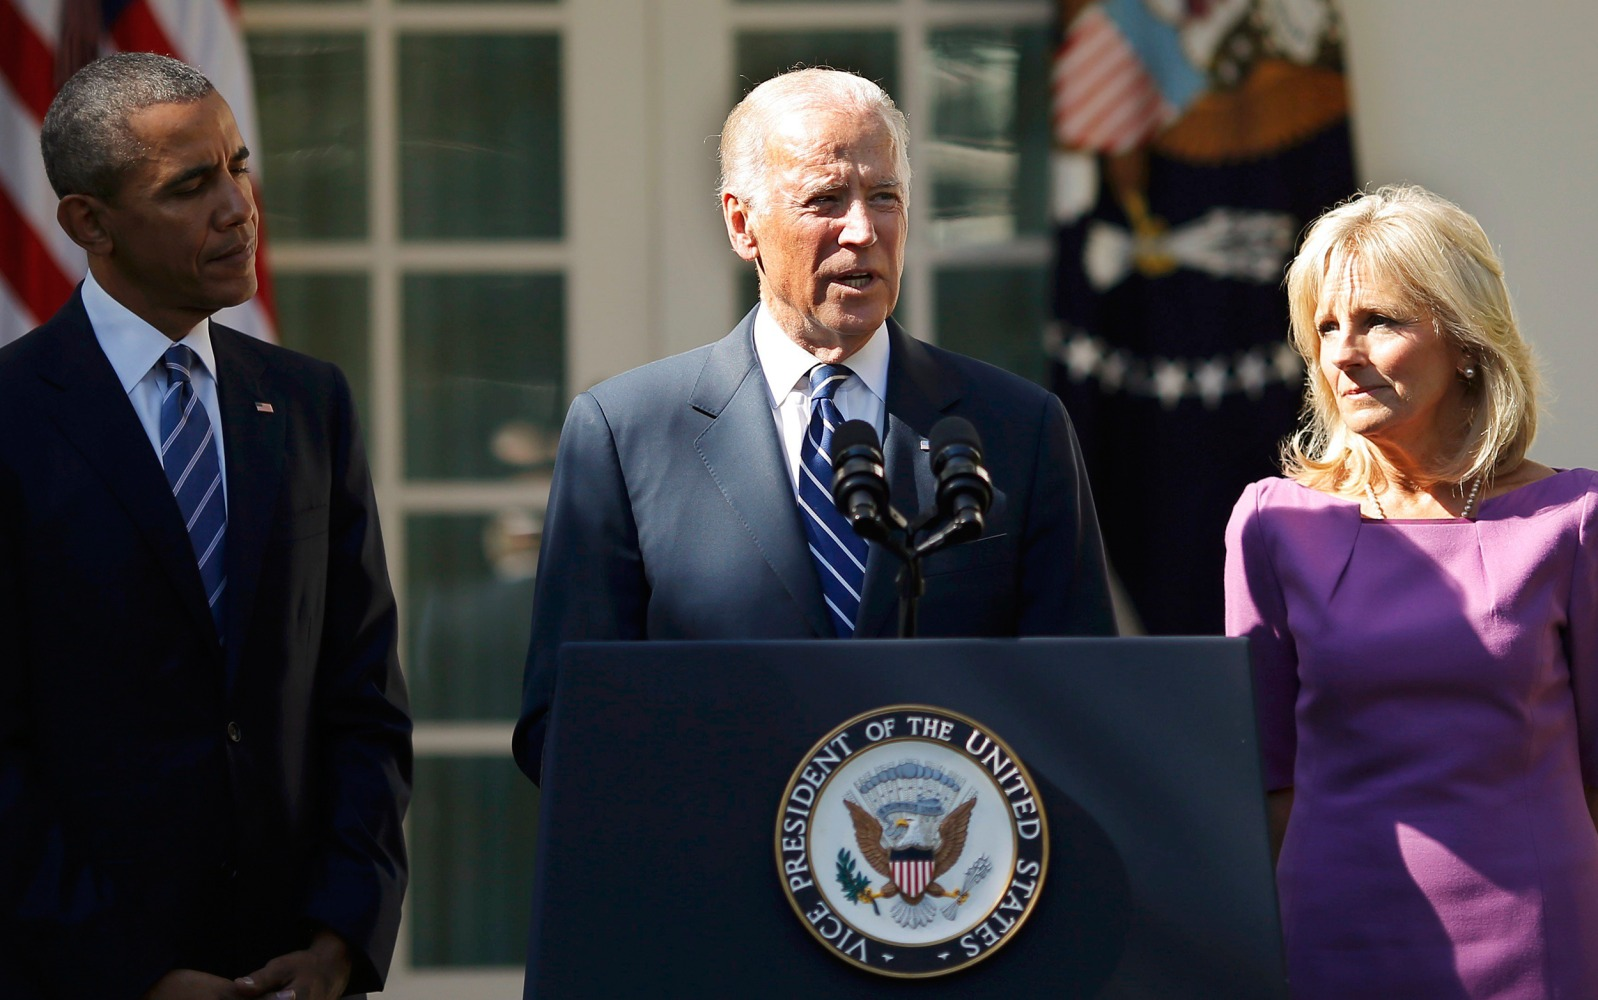 Joe Biden 'not closing the door' on 2020 run